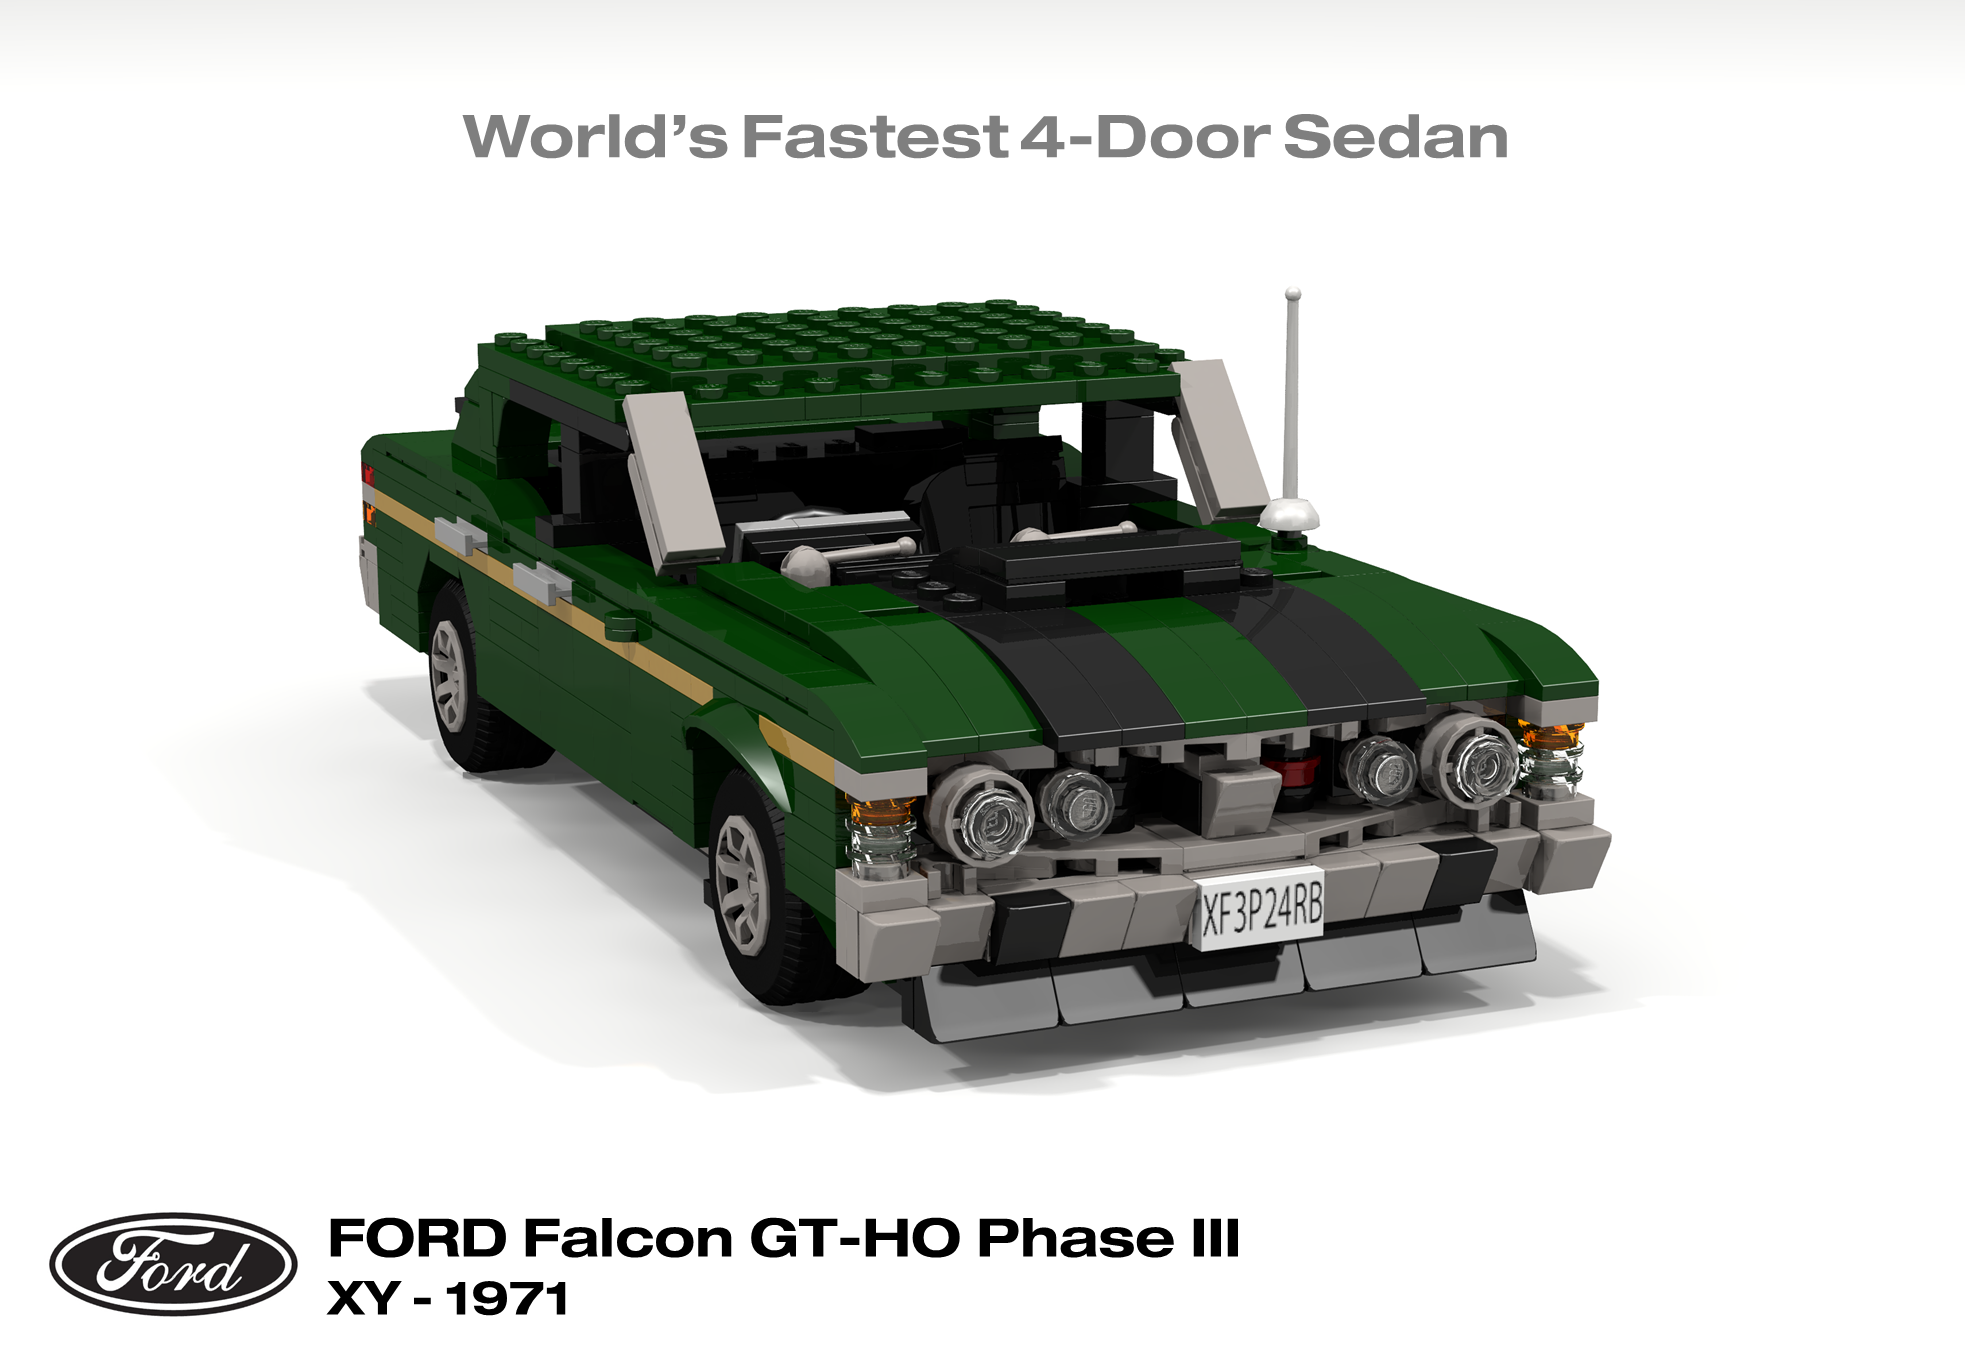 ford_falcon_xy_gt-ho_phase_iii_01.png